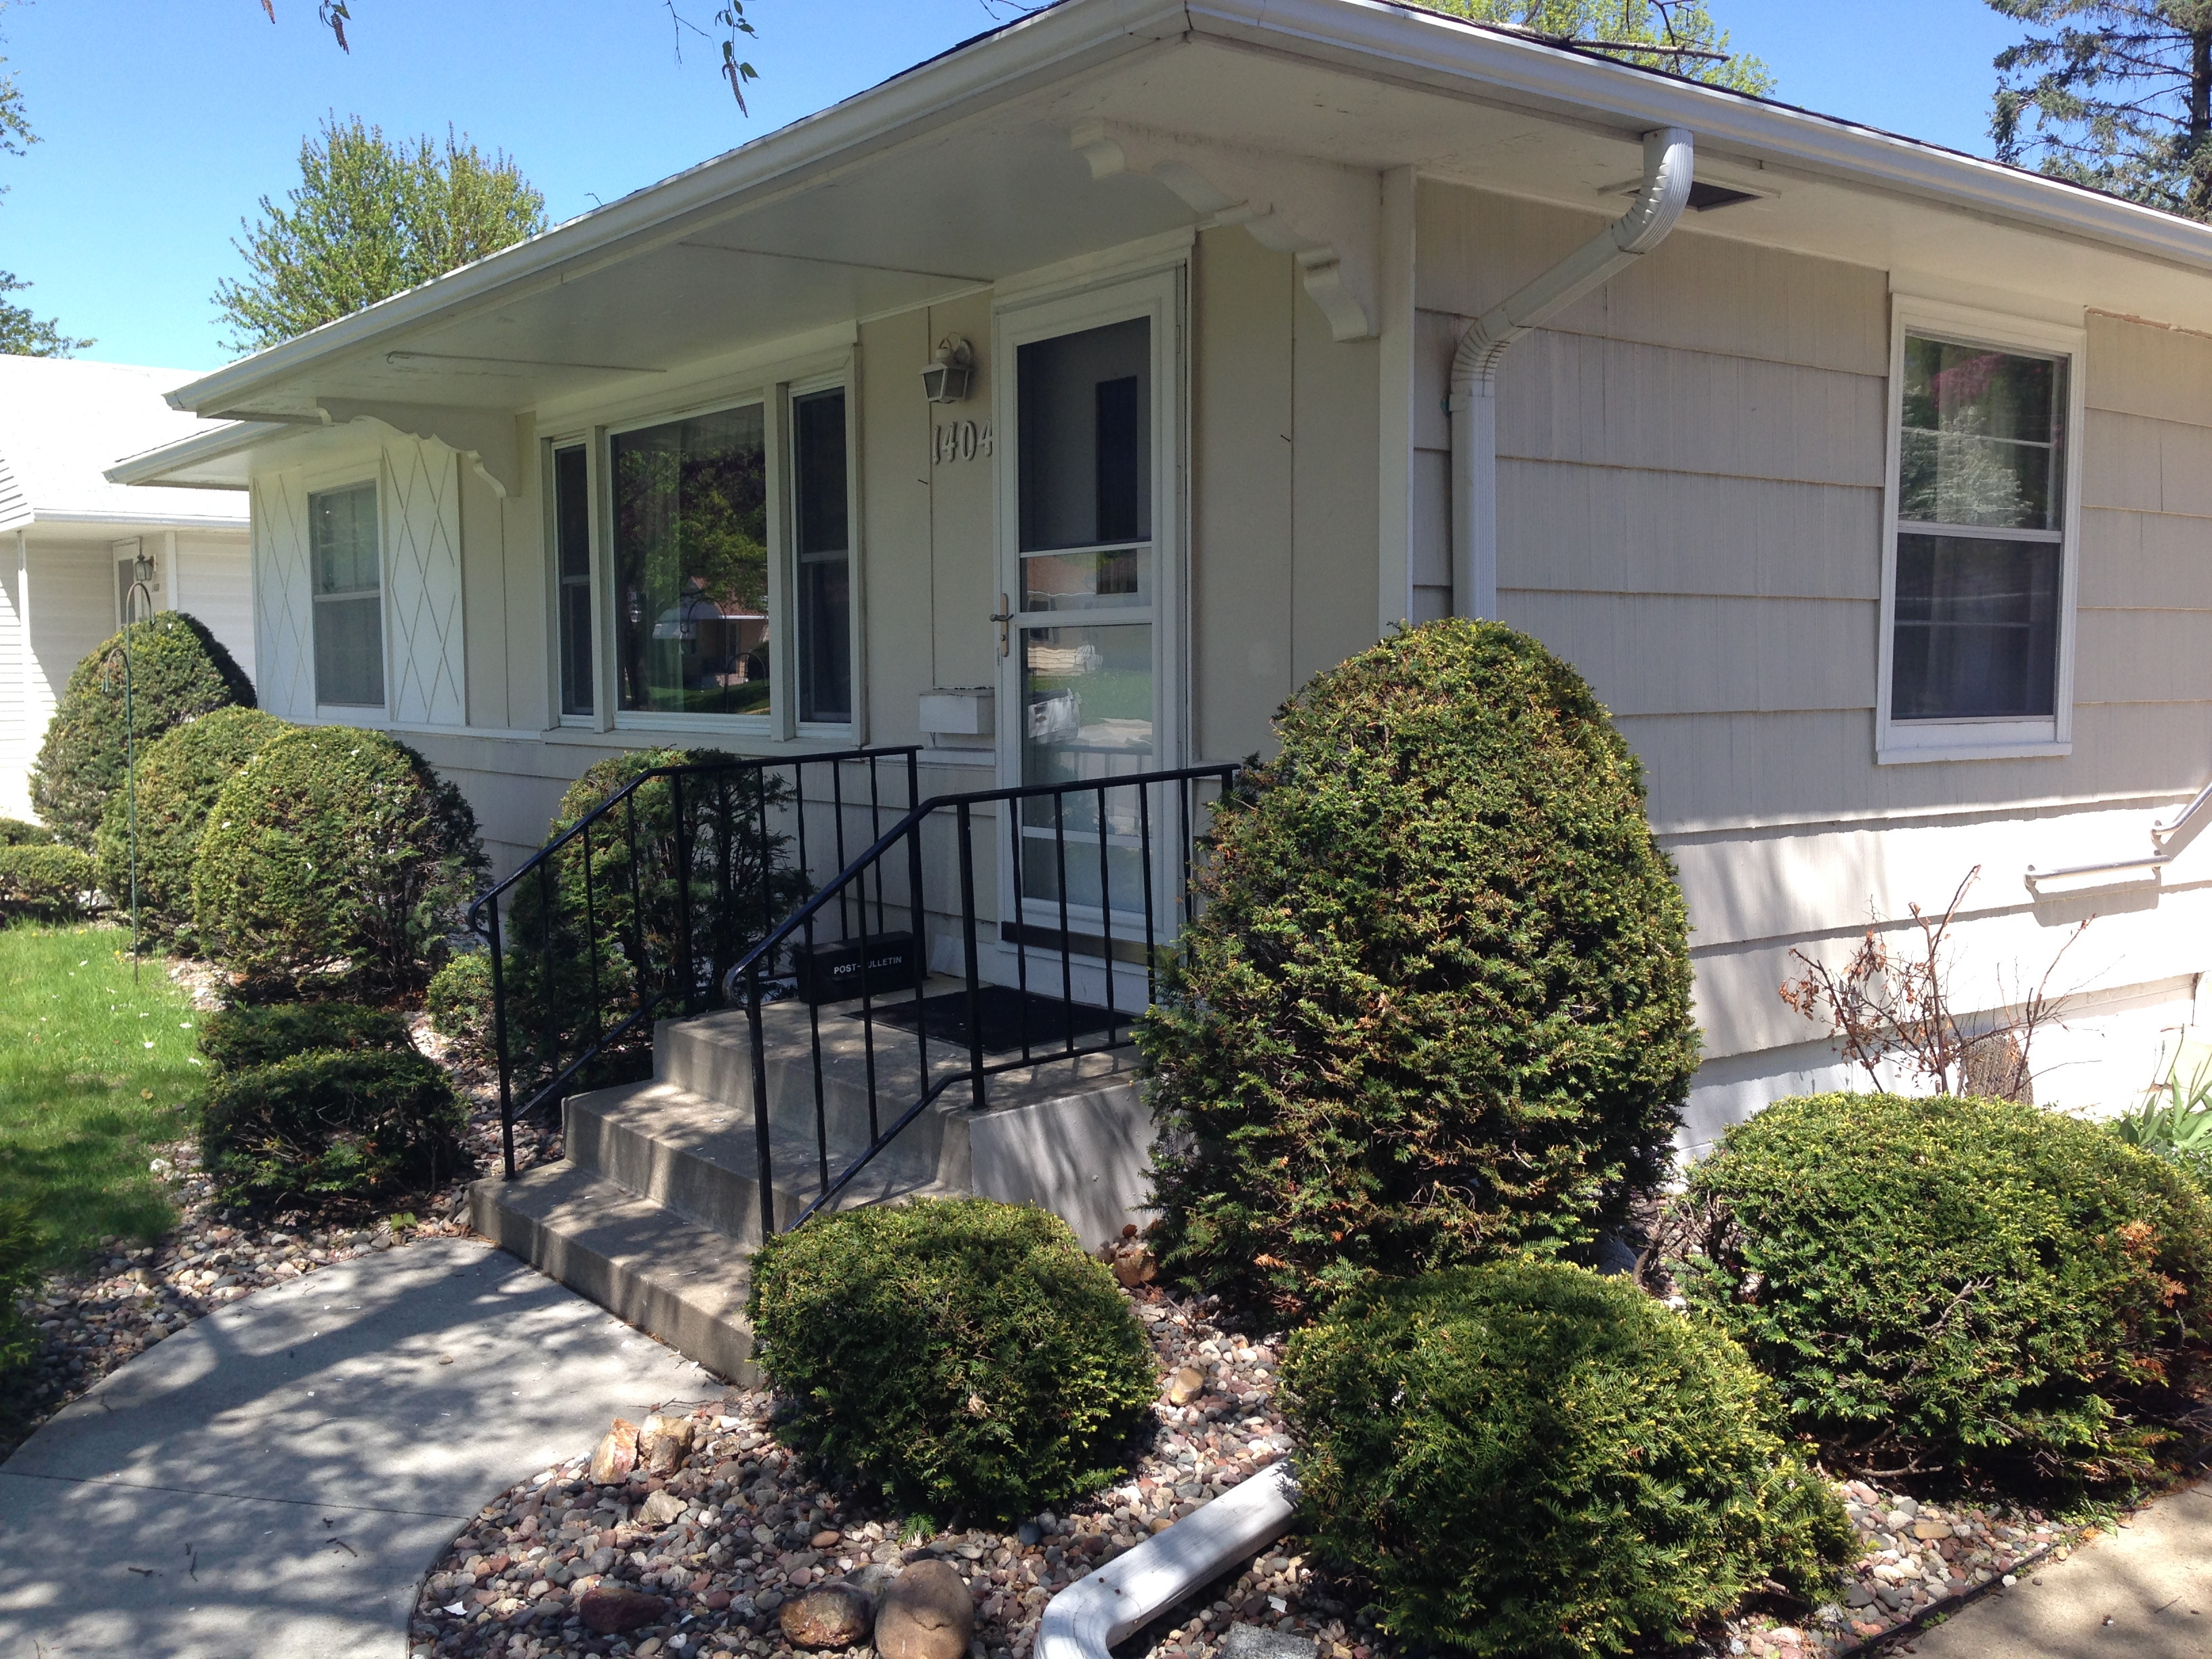 Clean House, Great for a home or rental - SOLD ($115,000)